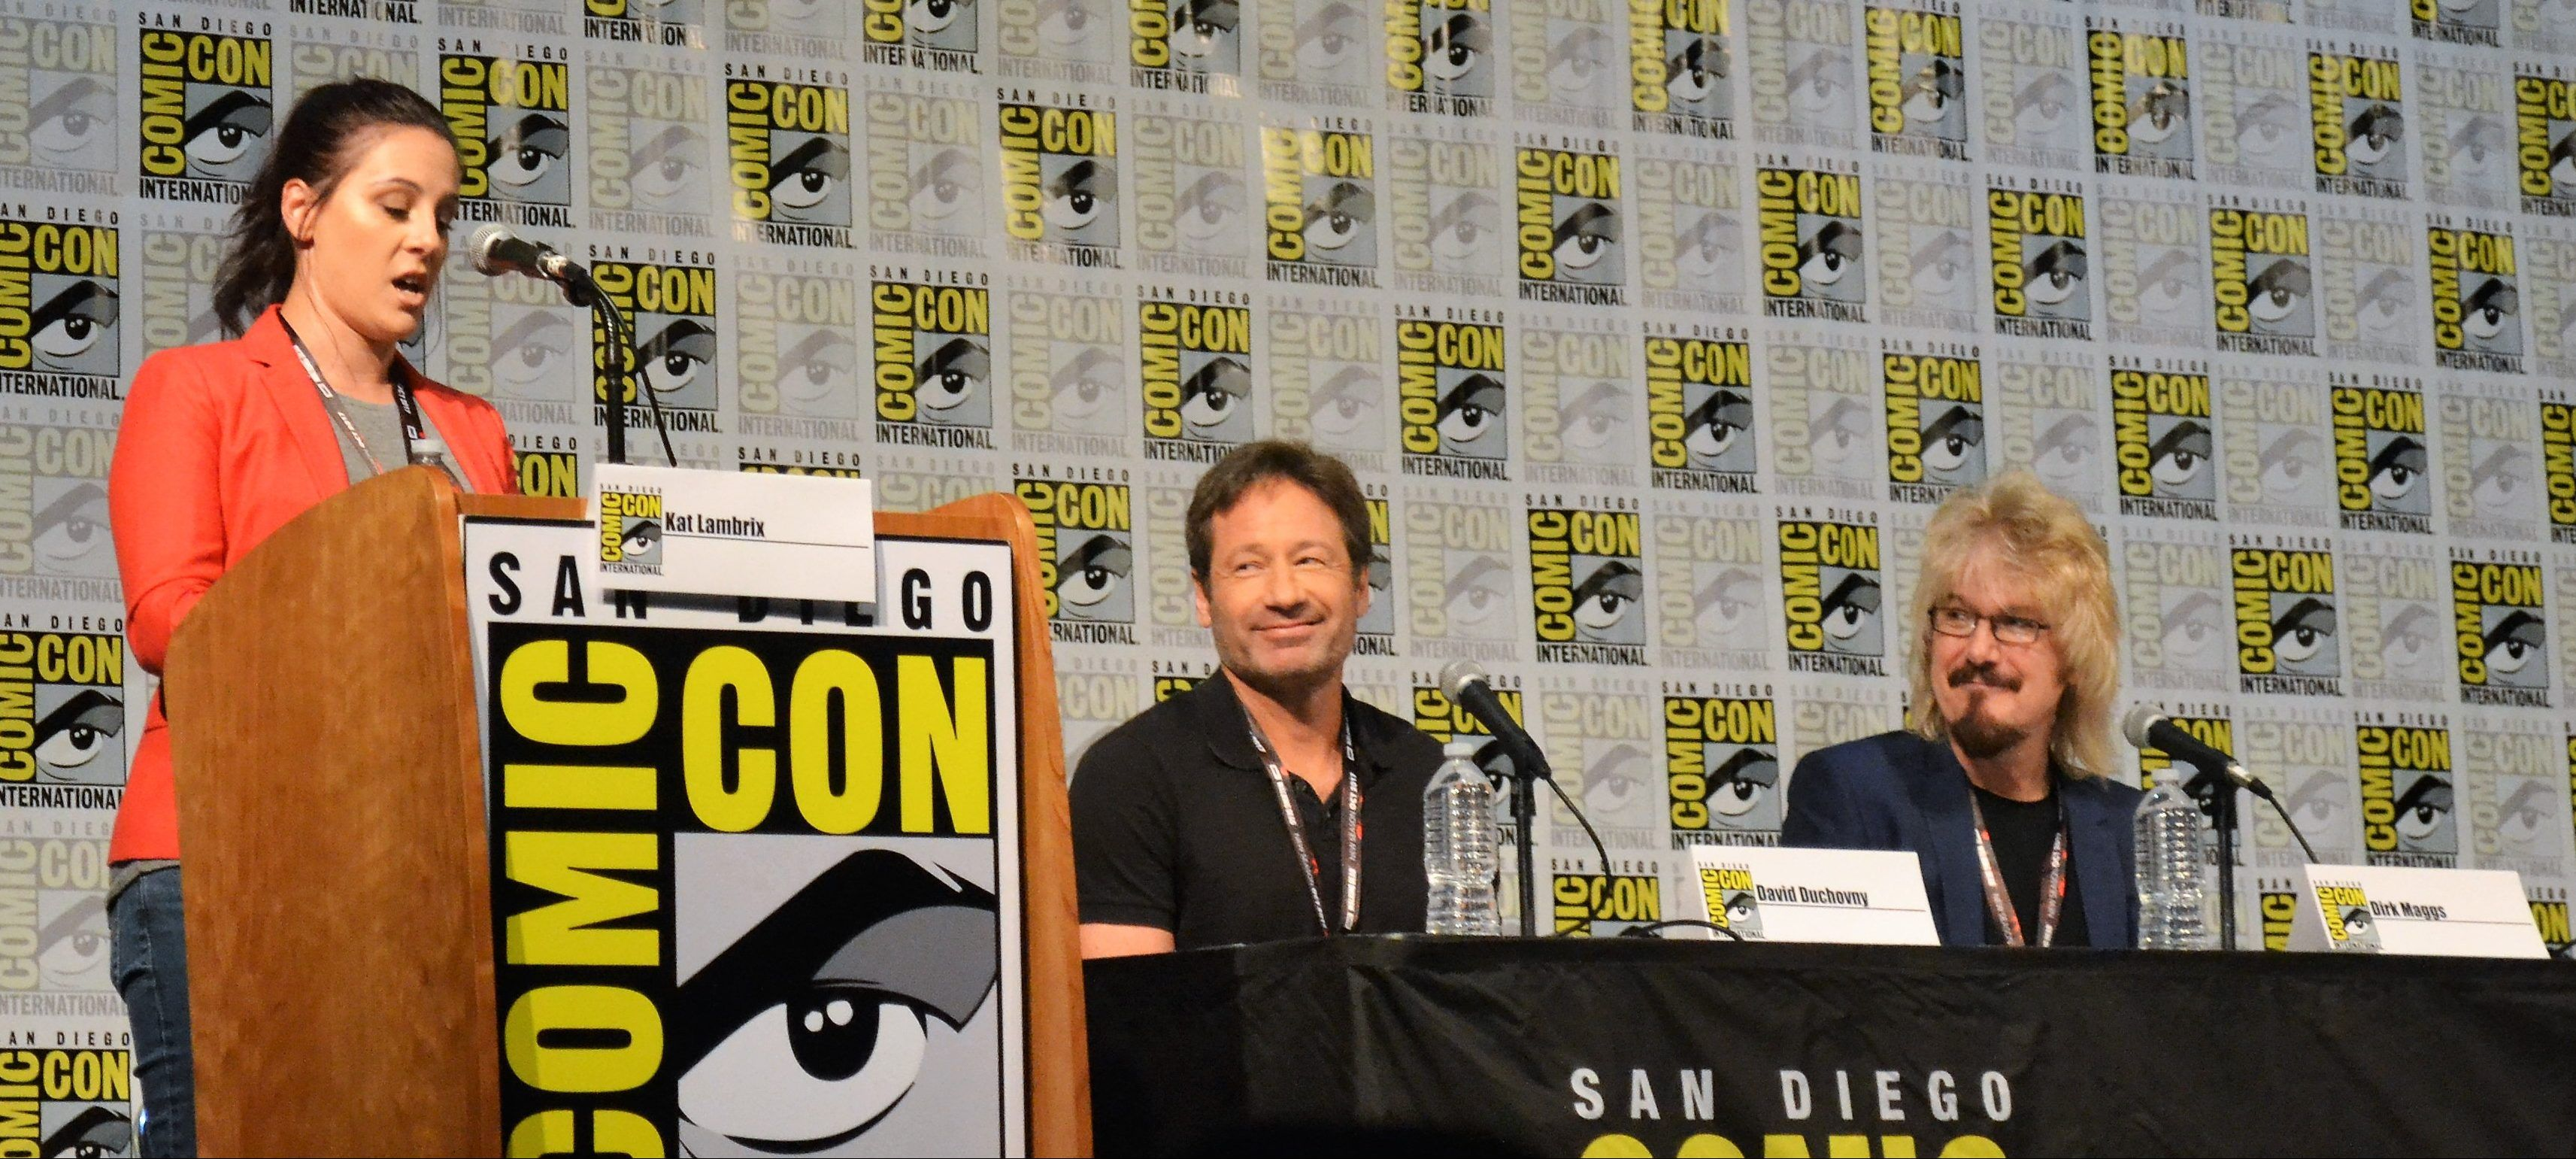 David Duchovny Says He Had Difficulty Voice Acting For X Files Audible Series